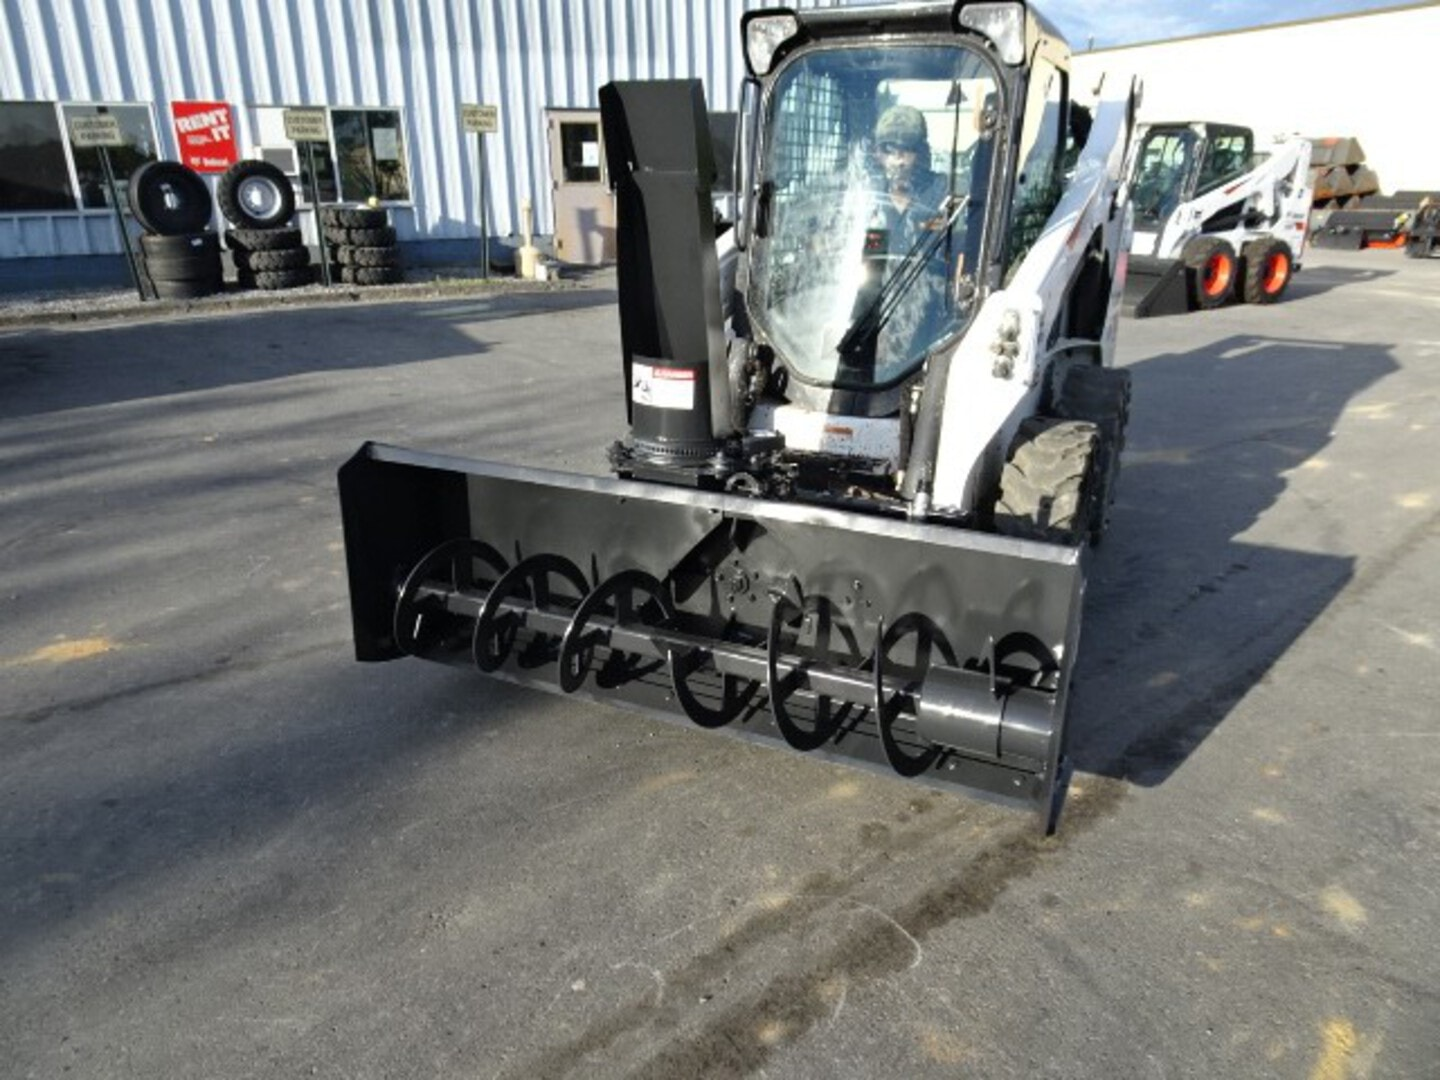 """Used, 2003, Bobcat, SB200 72"""" Snow Blower - Flow Range: 16.5 – 21 gpm - 20 in. Fan Diameter 14 in. Auger Diameter - Up to 40 ft. Throw Distance, Snowblowers"""